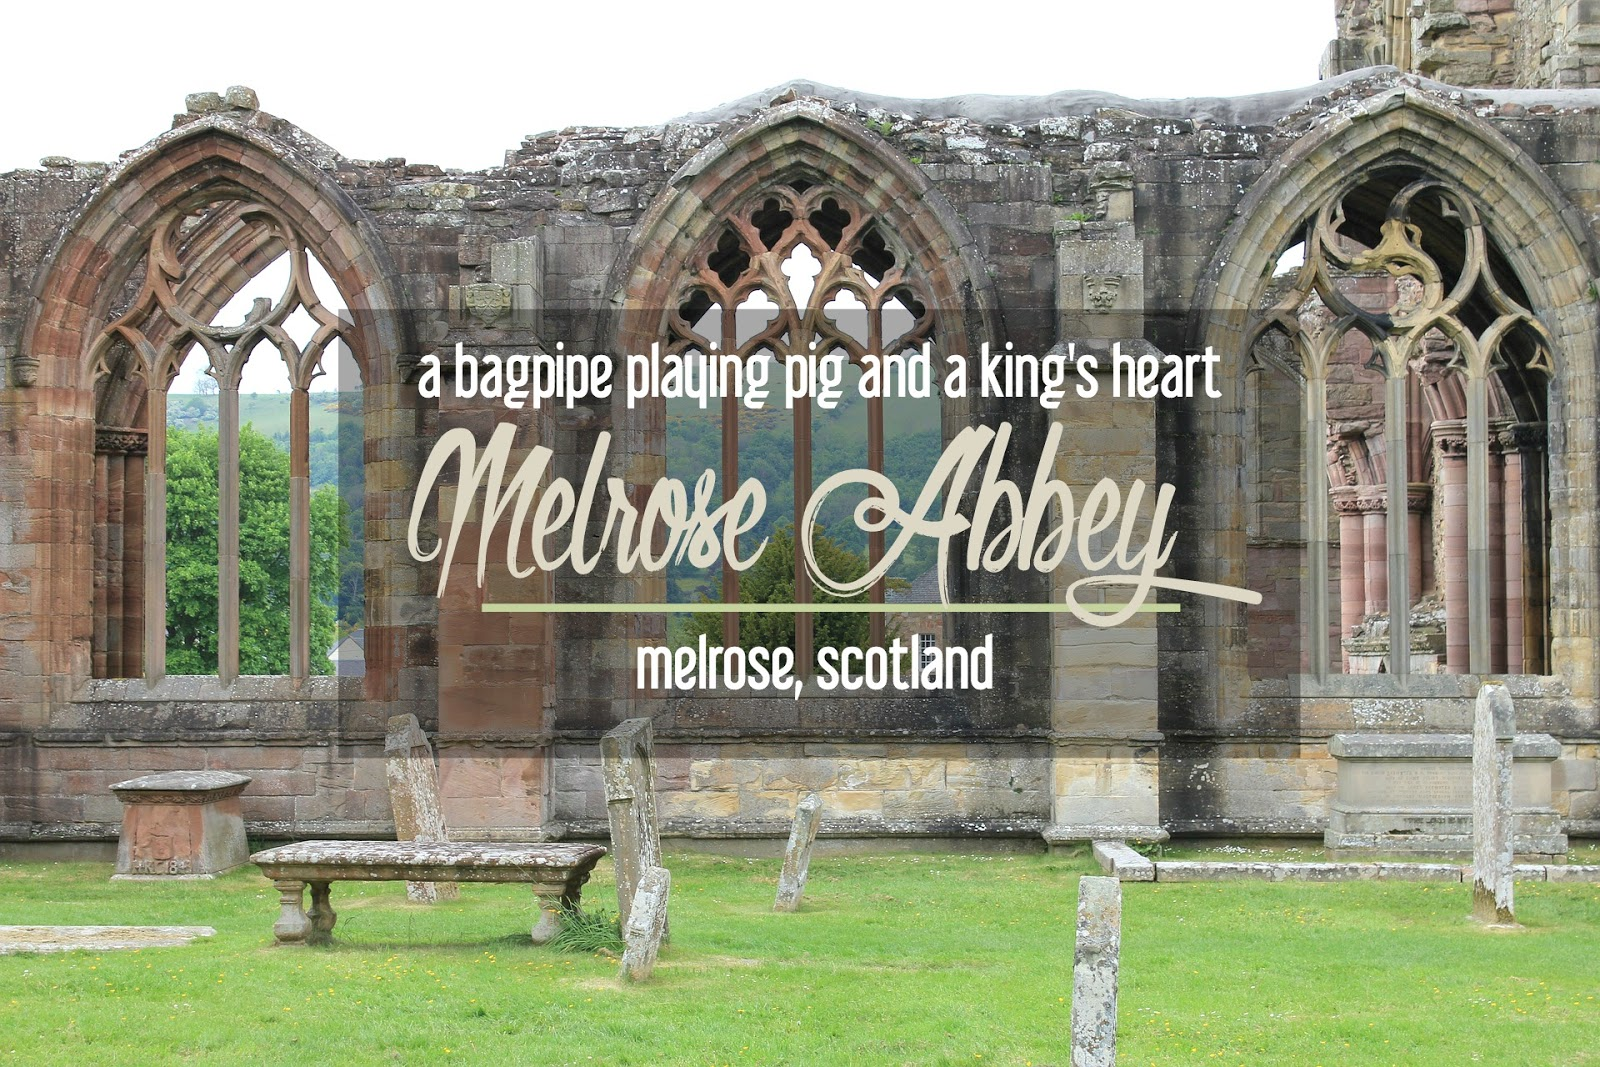 Melrose Abbey: Must-See Historic Ruins near Edinburgh, Scotland